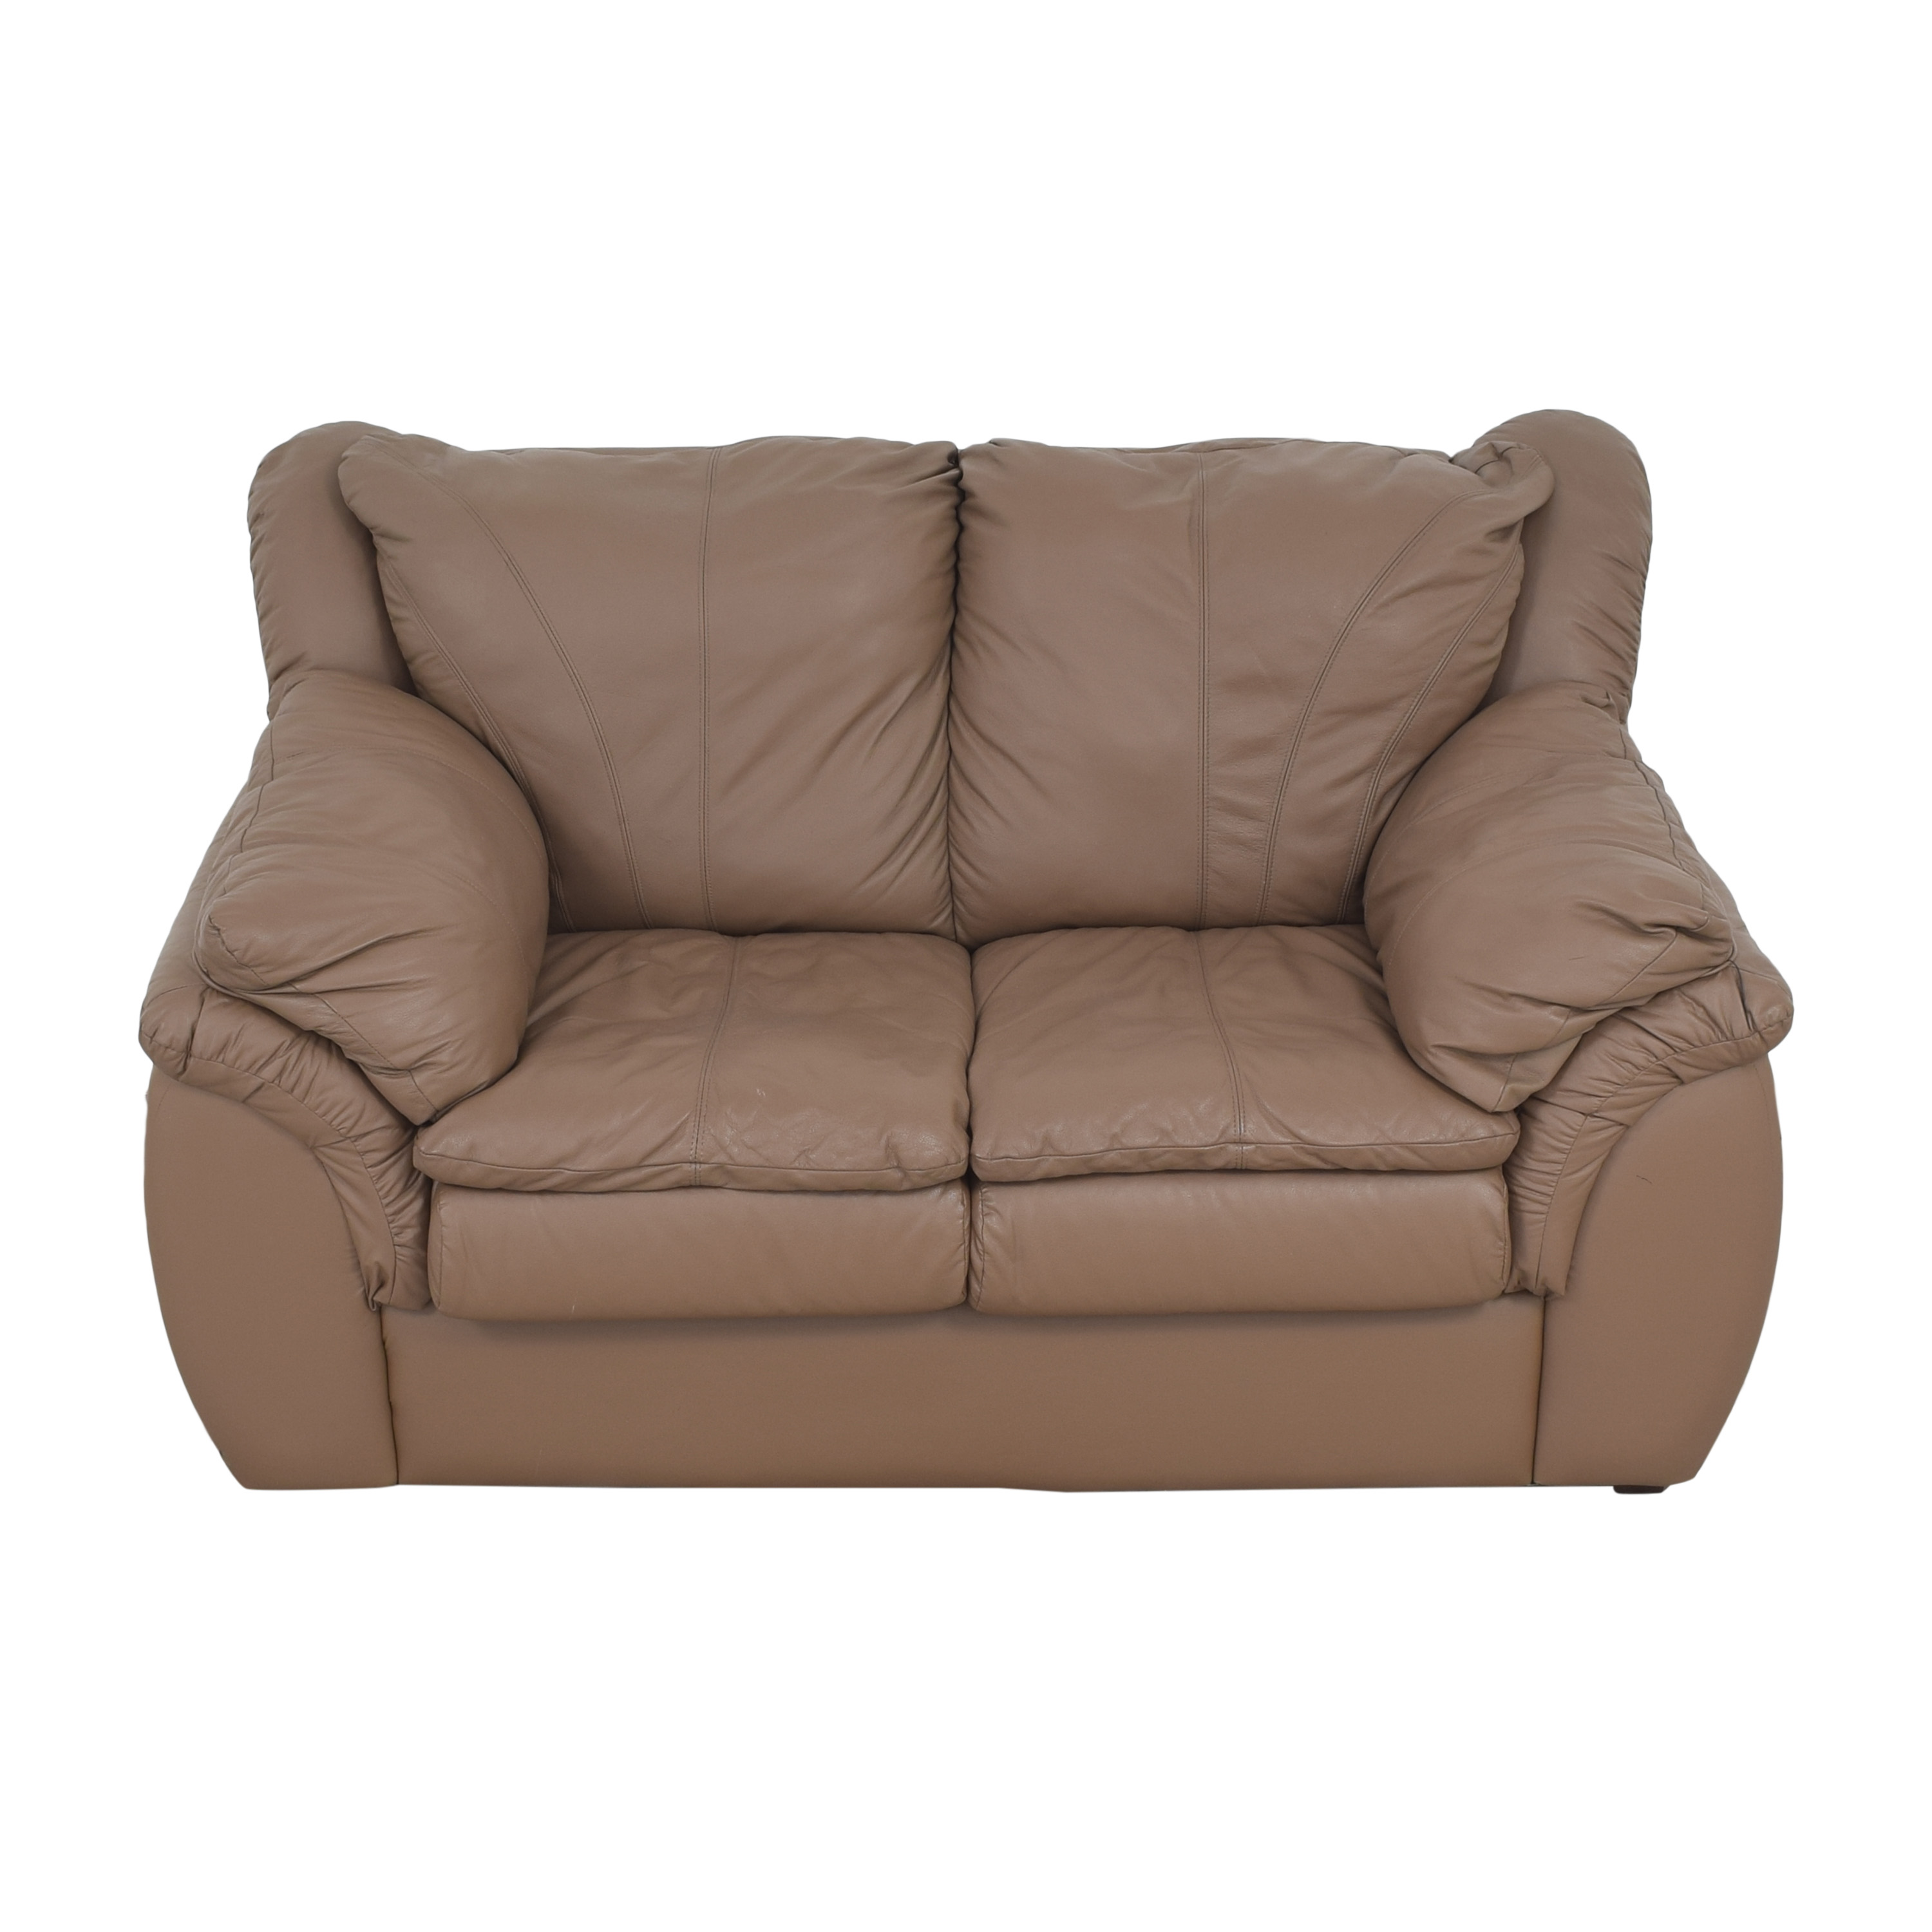 Plush Loveseat with Arm Cushions sale